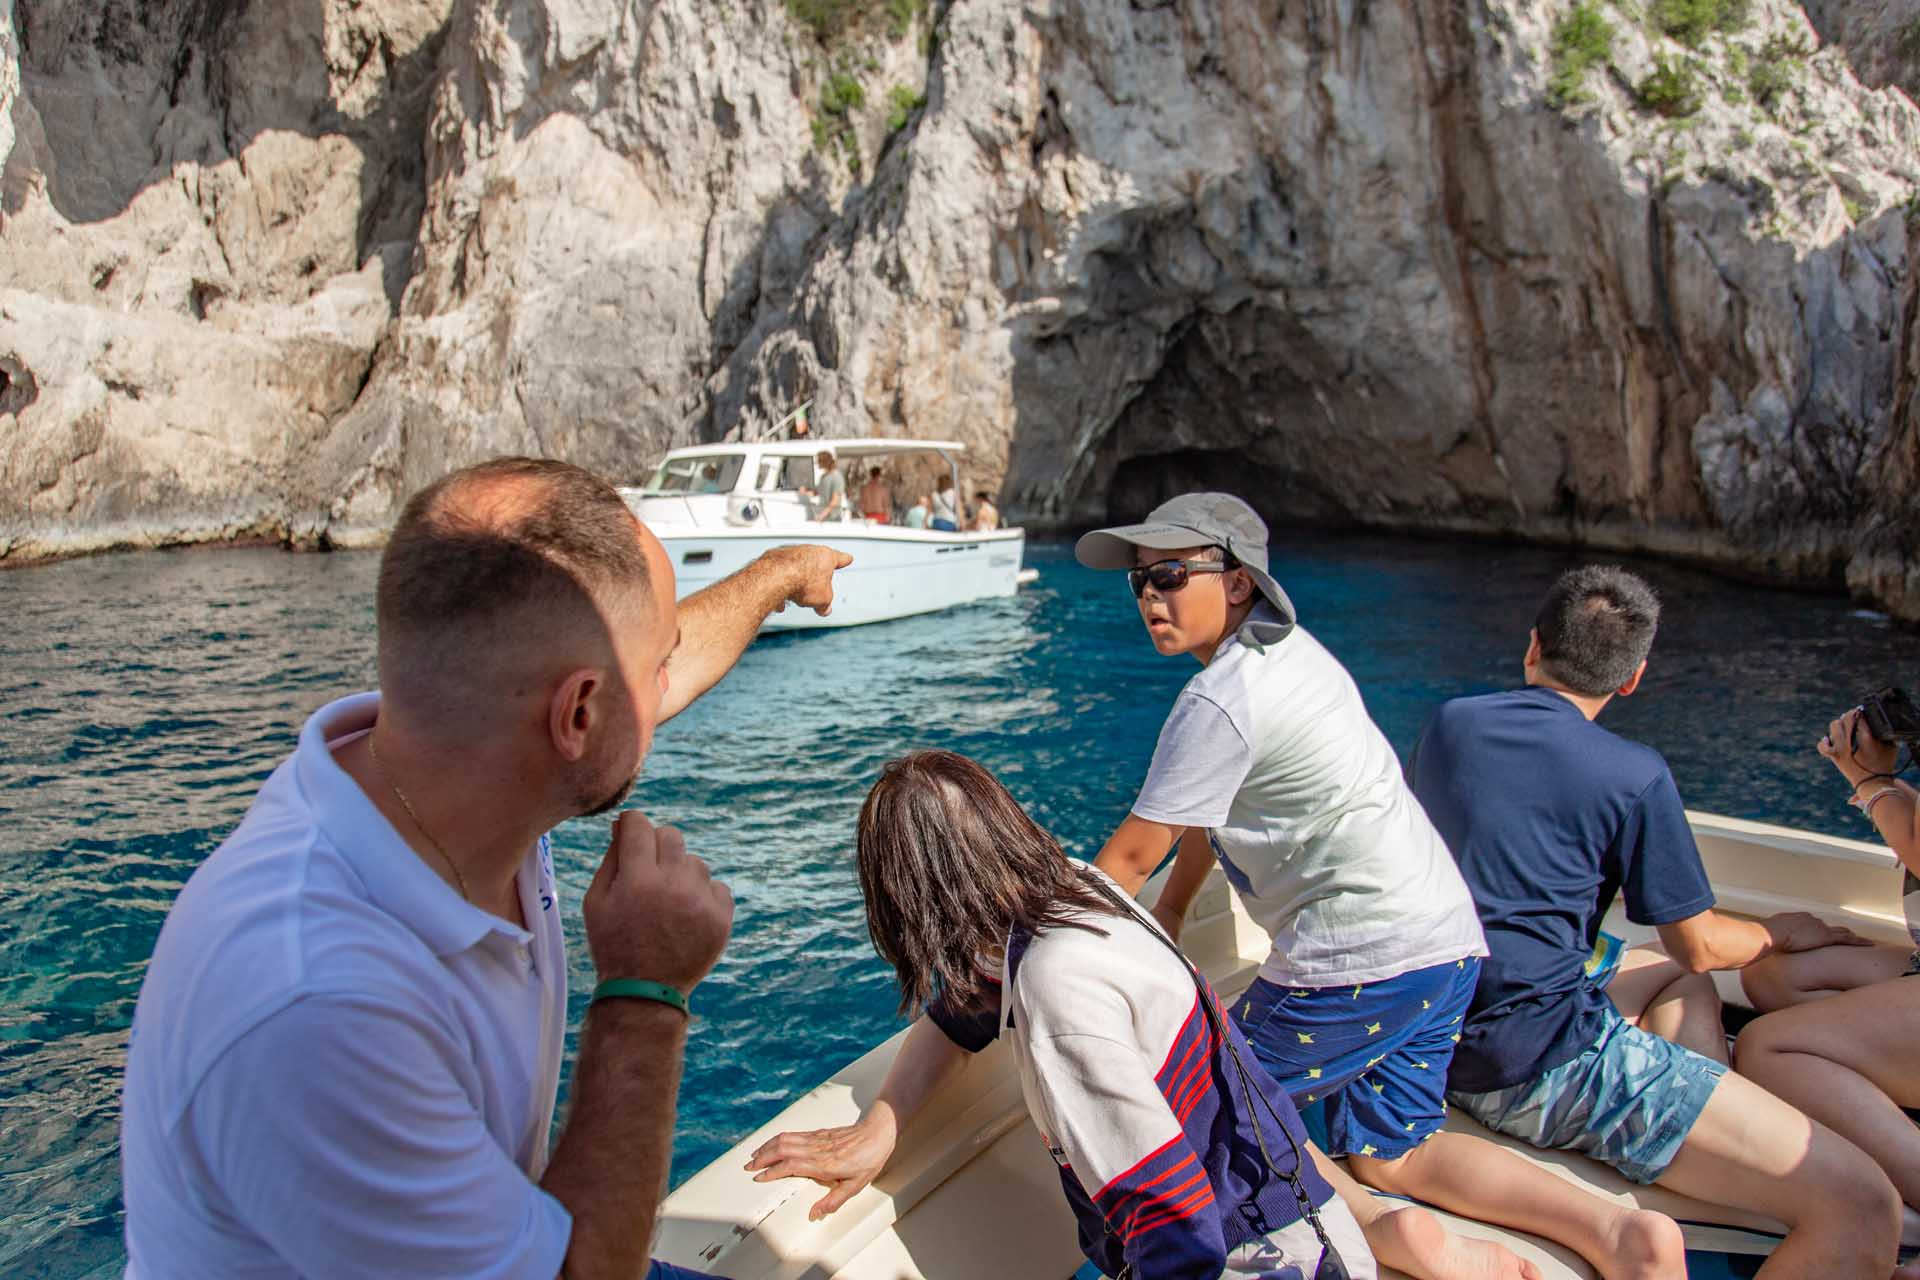 Capri caves tour by boat